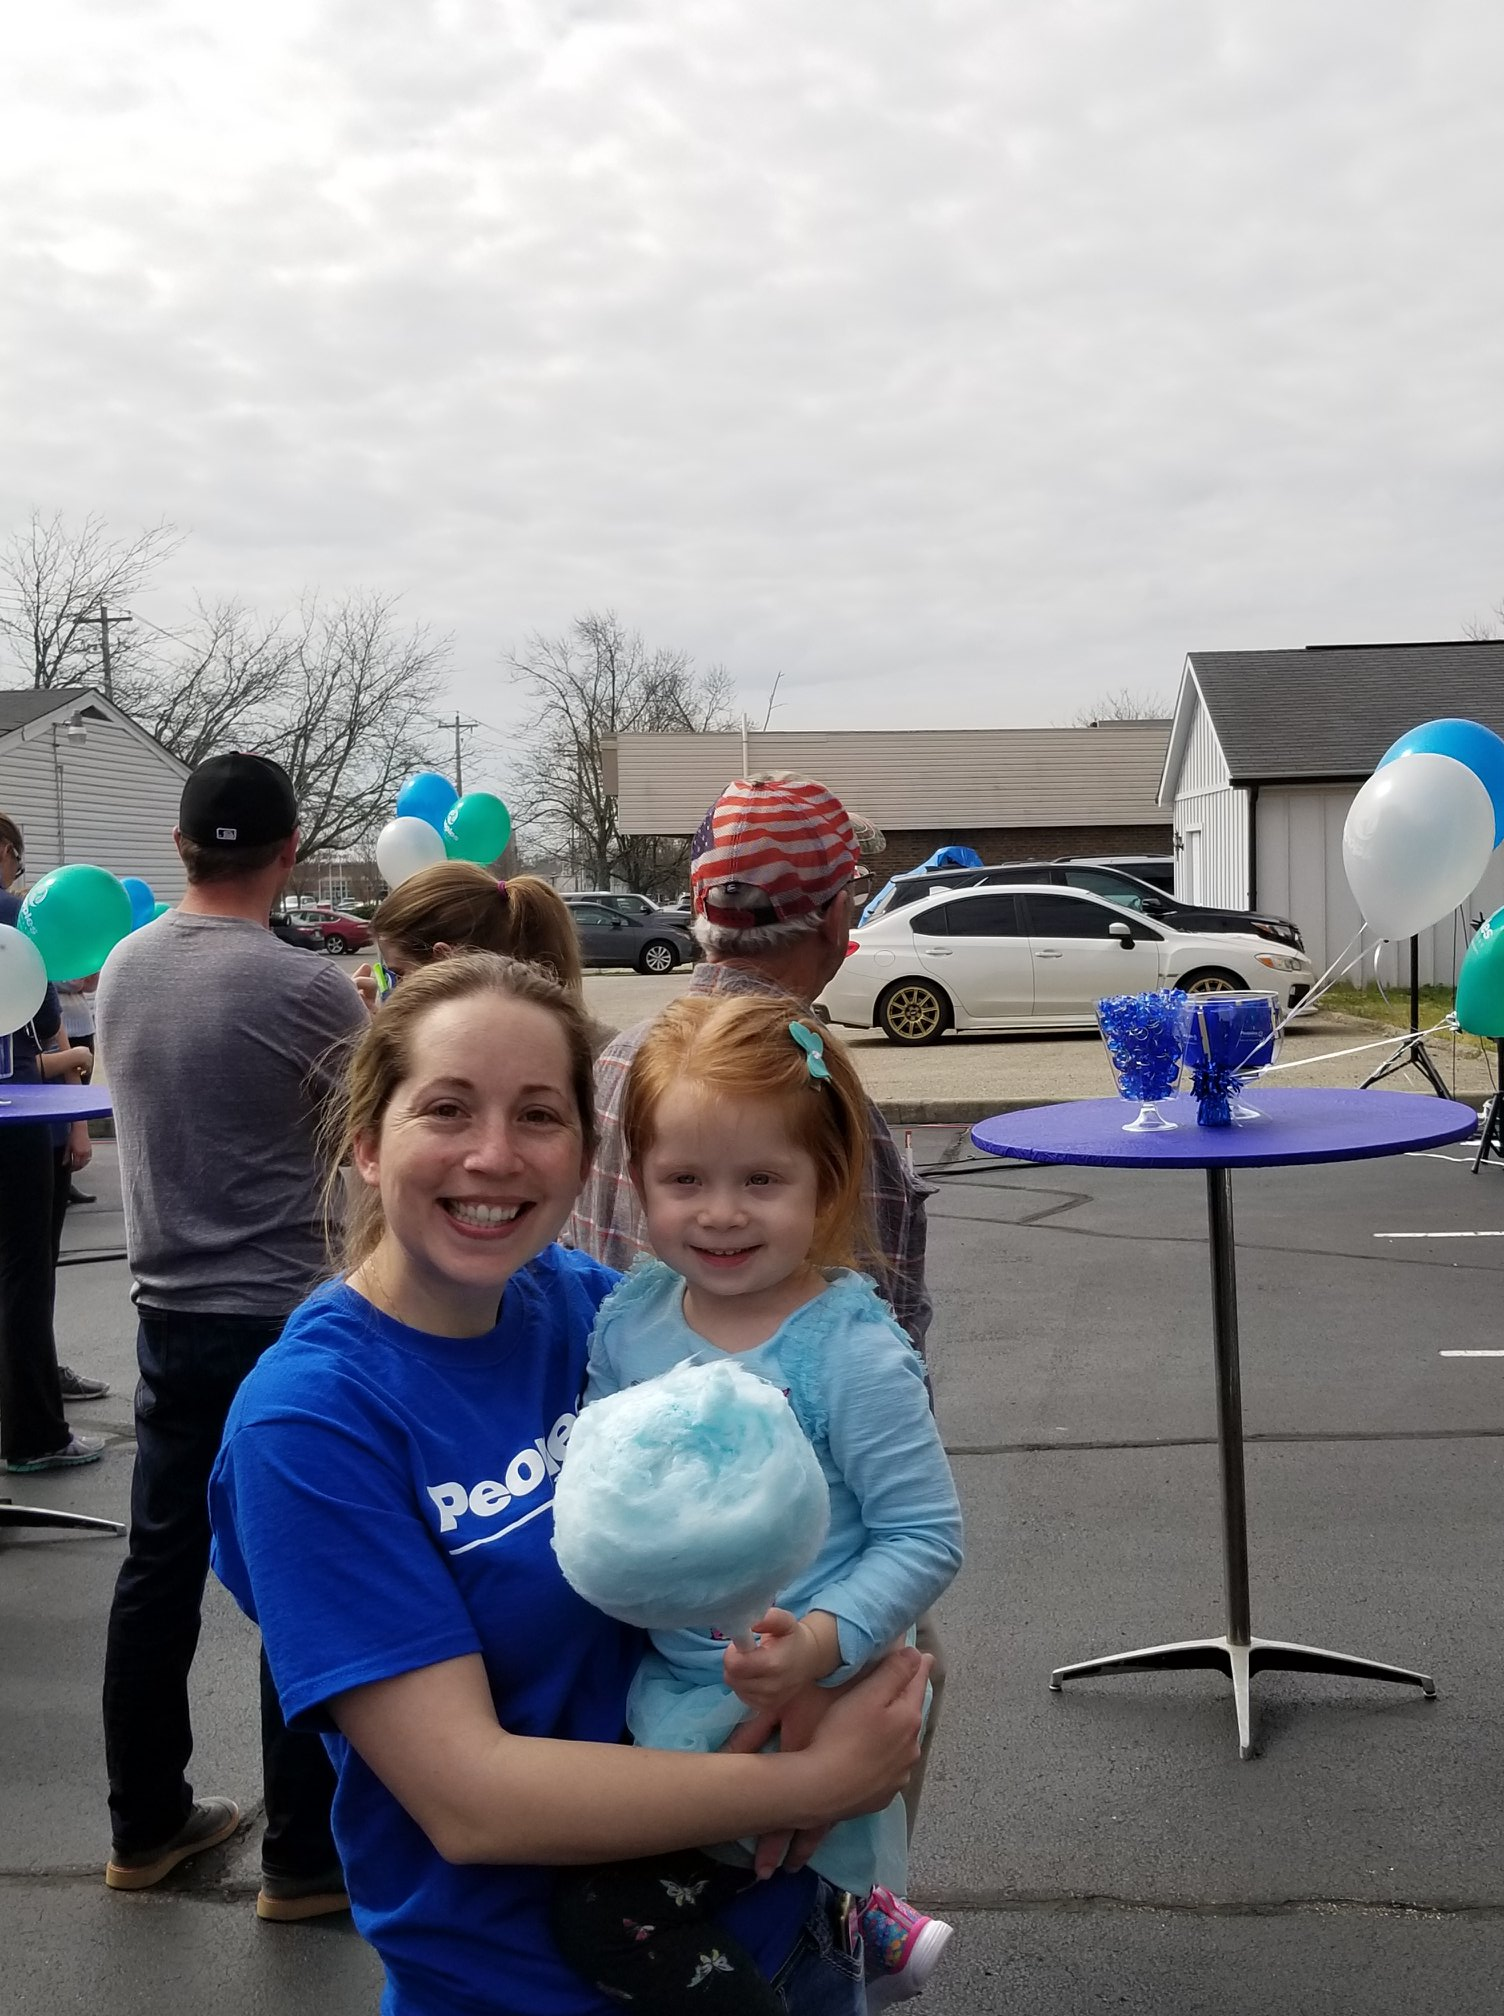 Two girls smiling for the camera and a man is standing facing backwards in the background with balloons scattered around